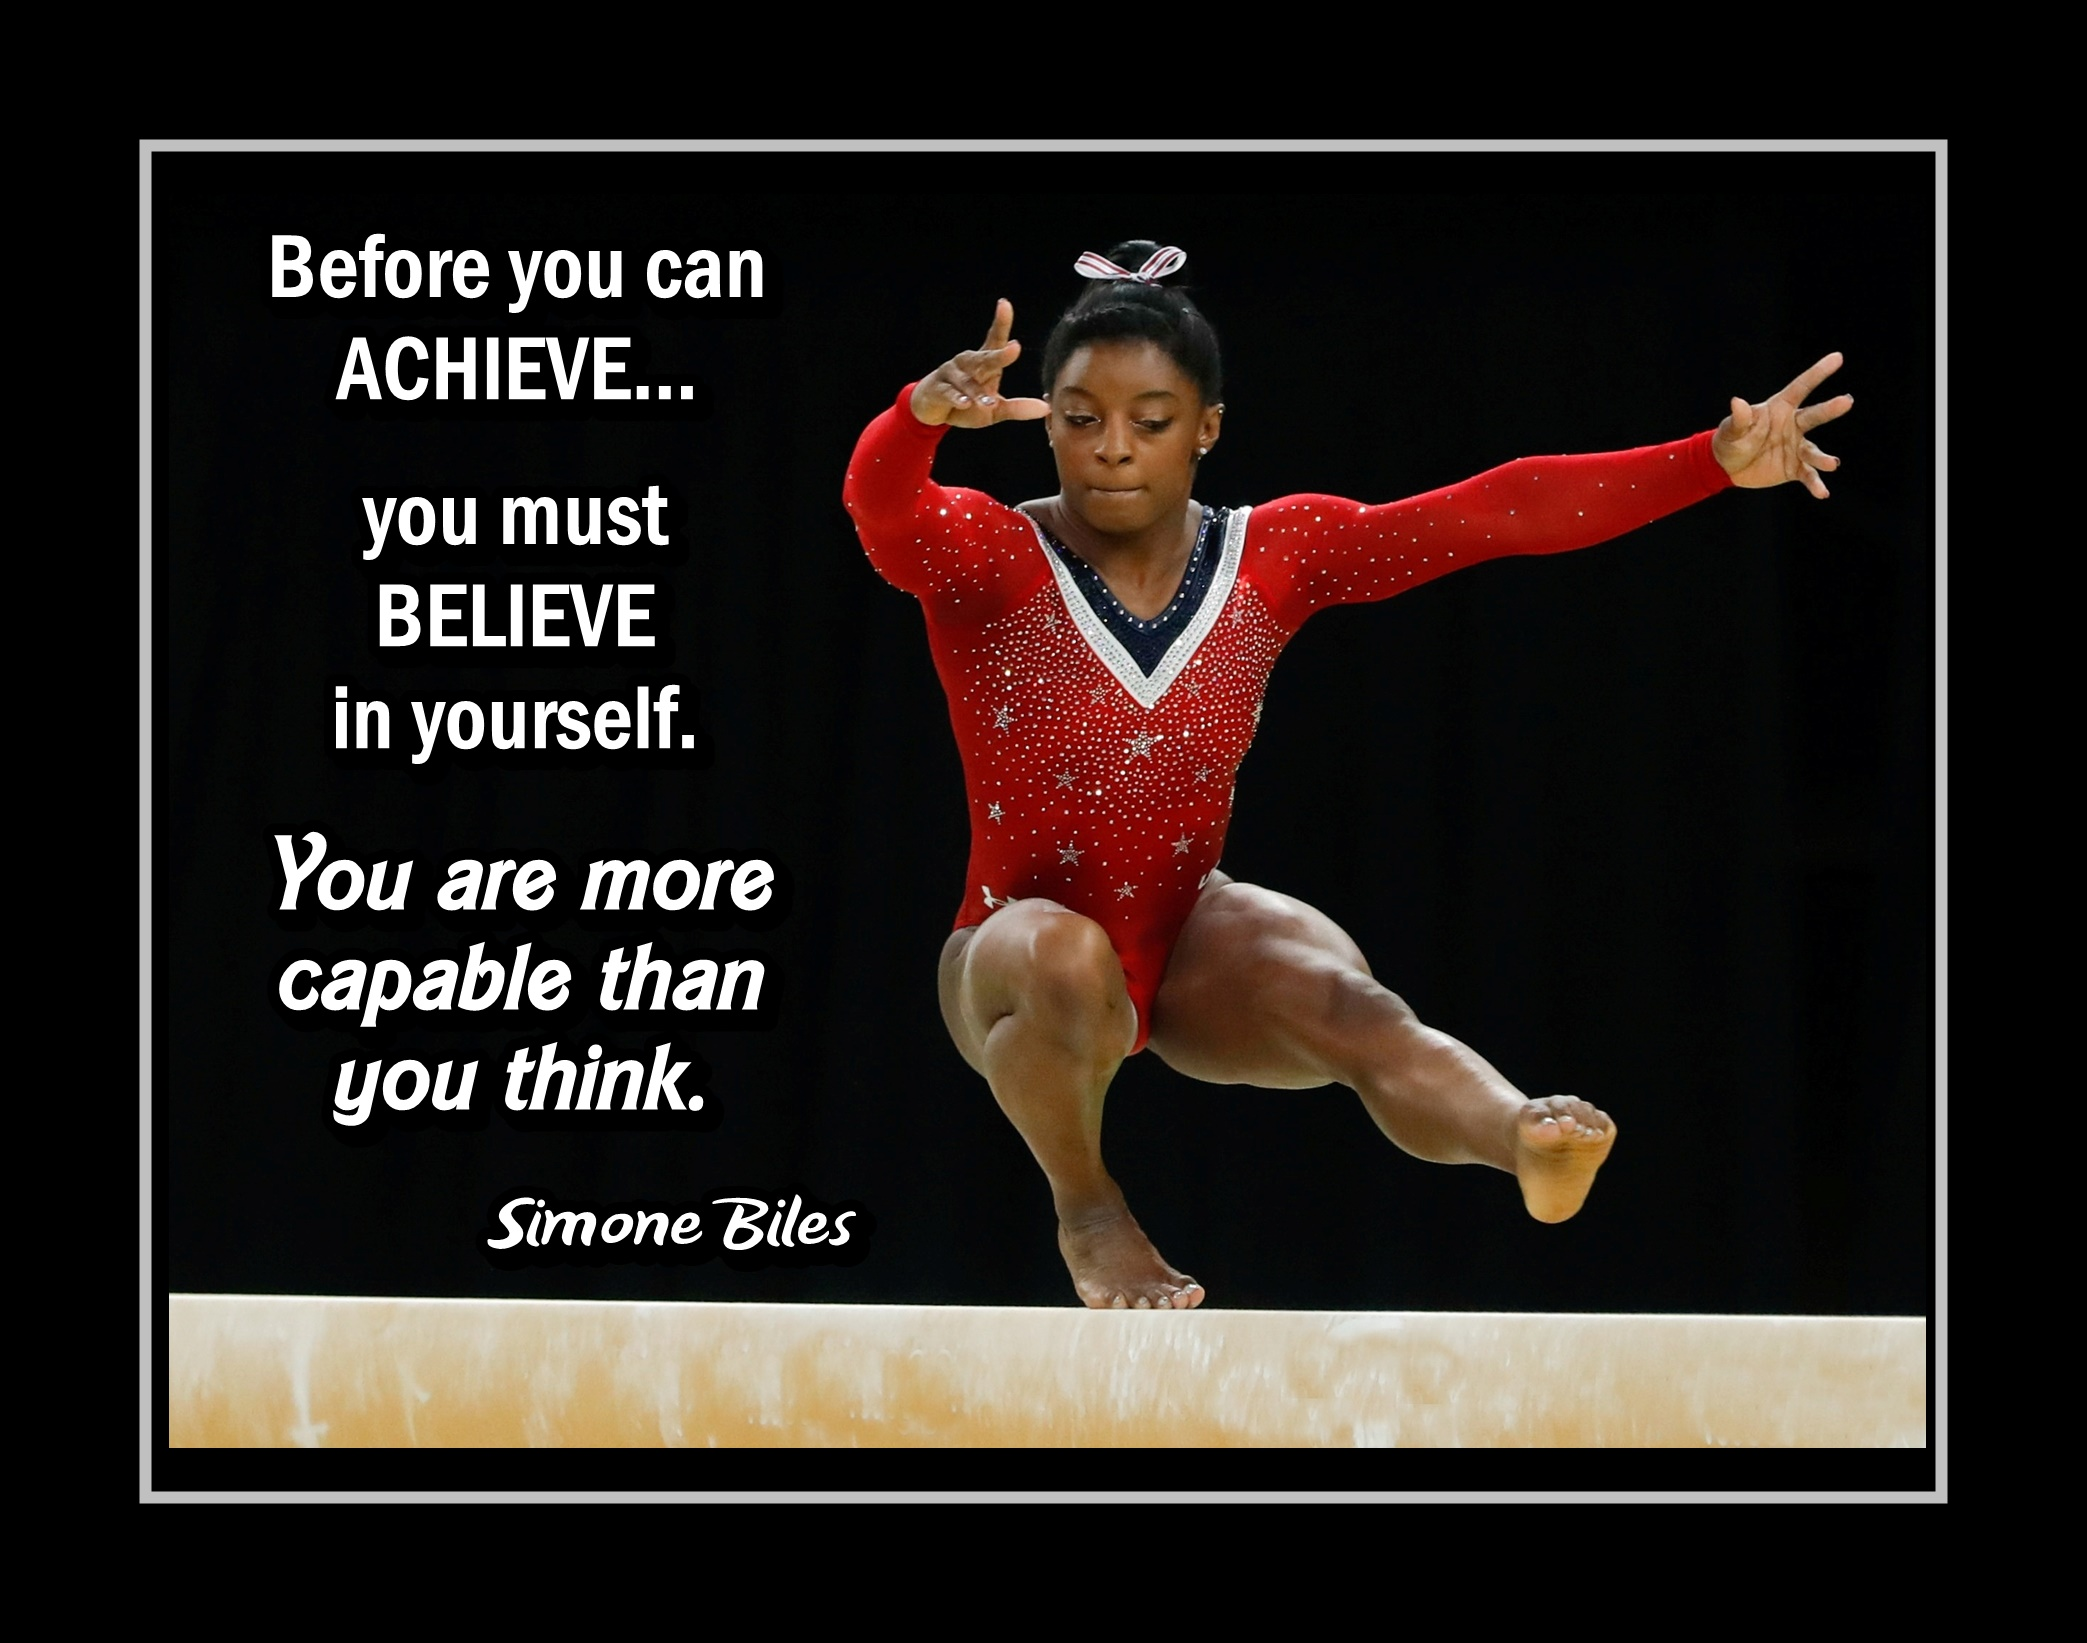 """Simone Biles Inspirational Gymnastics Quote Poster #1 Champion Gymnast Wall  Art Gift """"You Are More Capable Than You Think"""" sold by ArleyArt on Storenvy"""